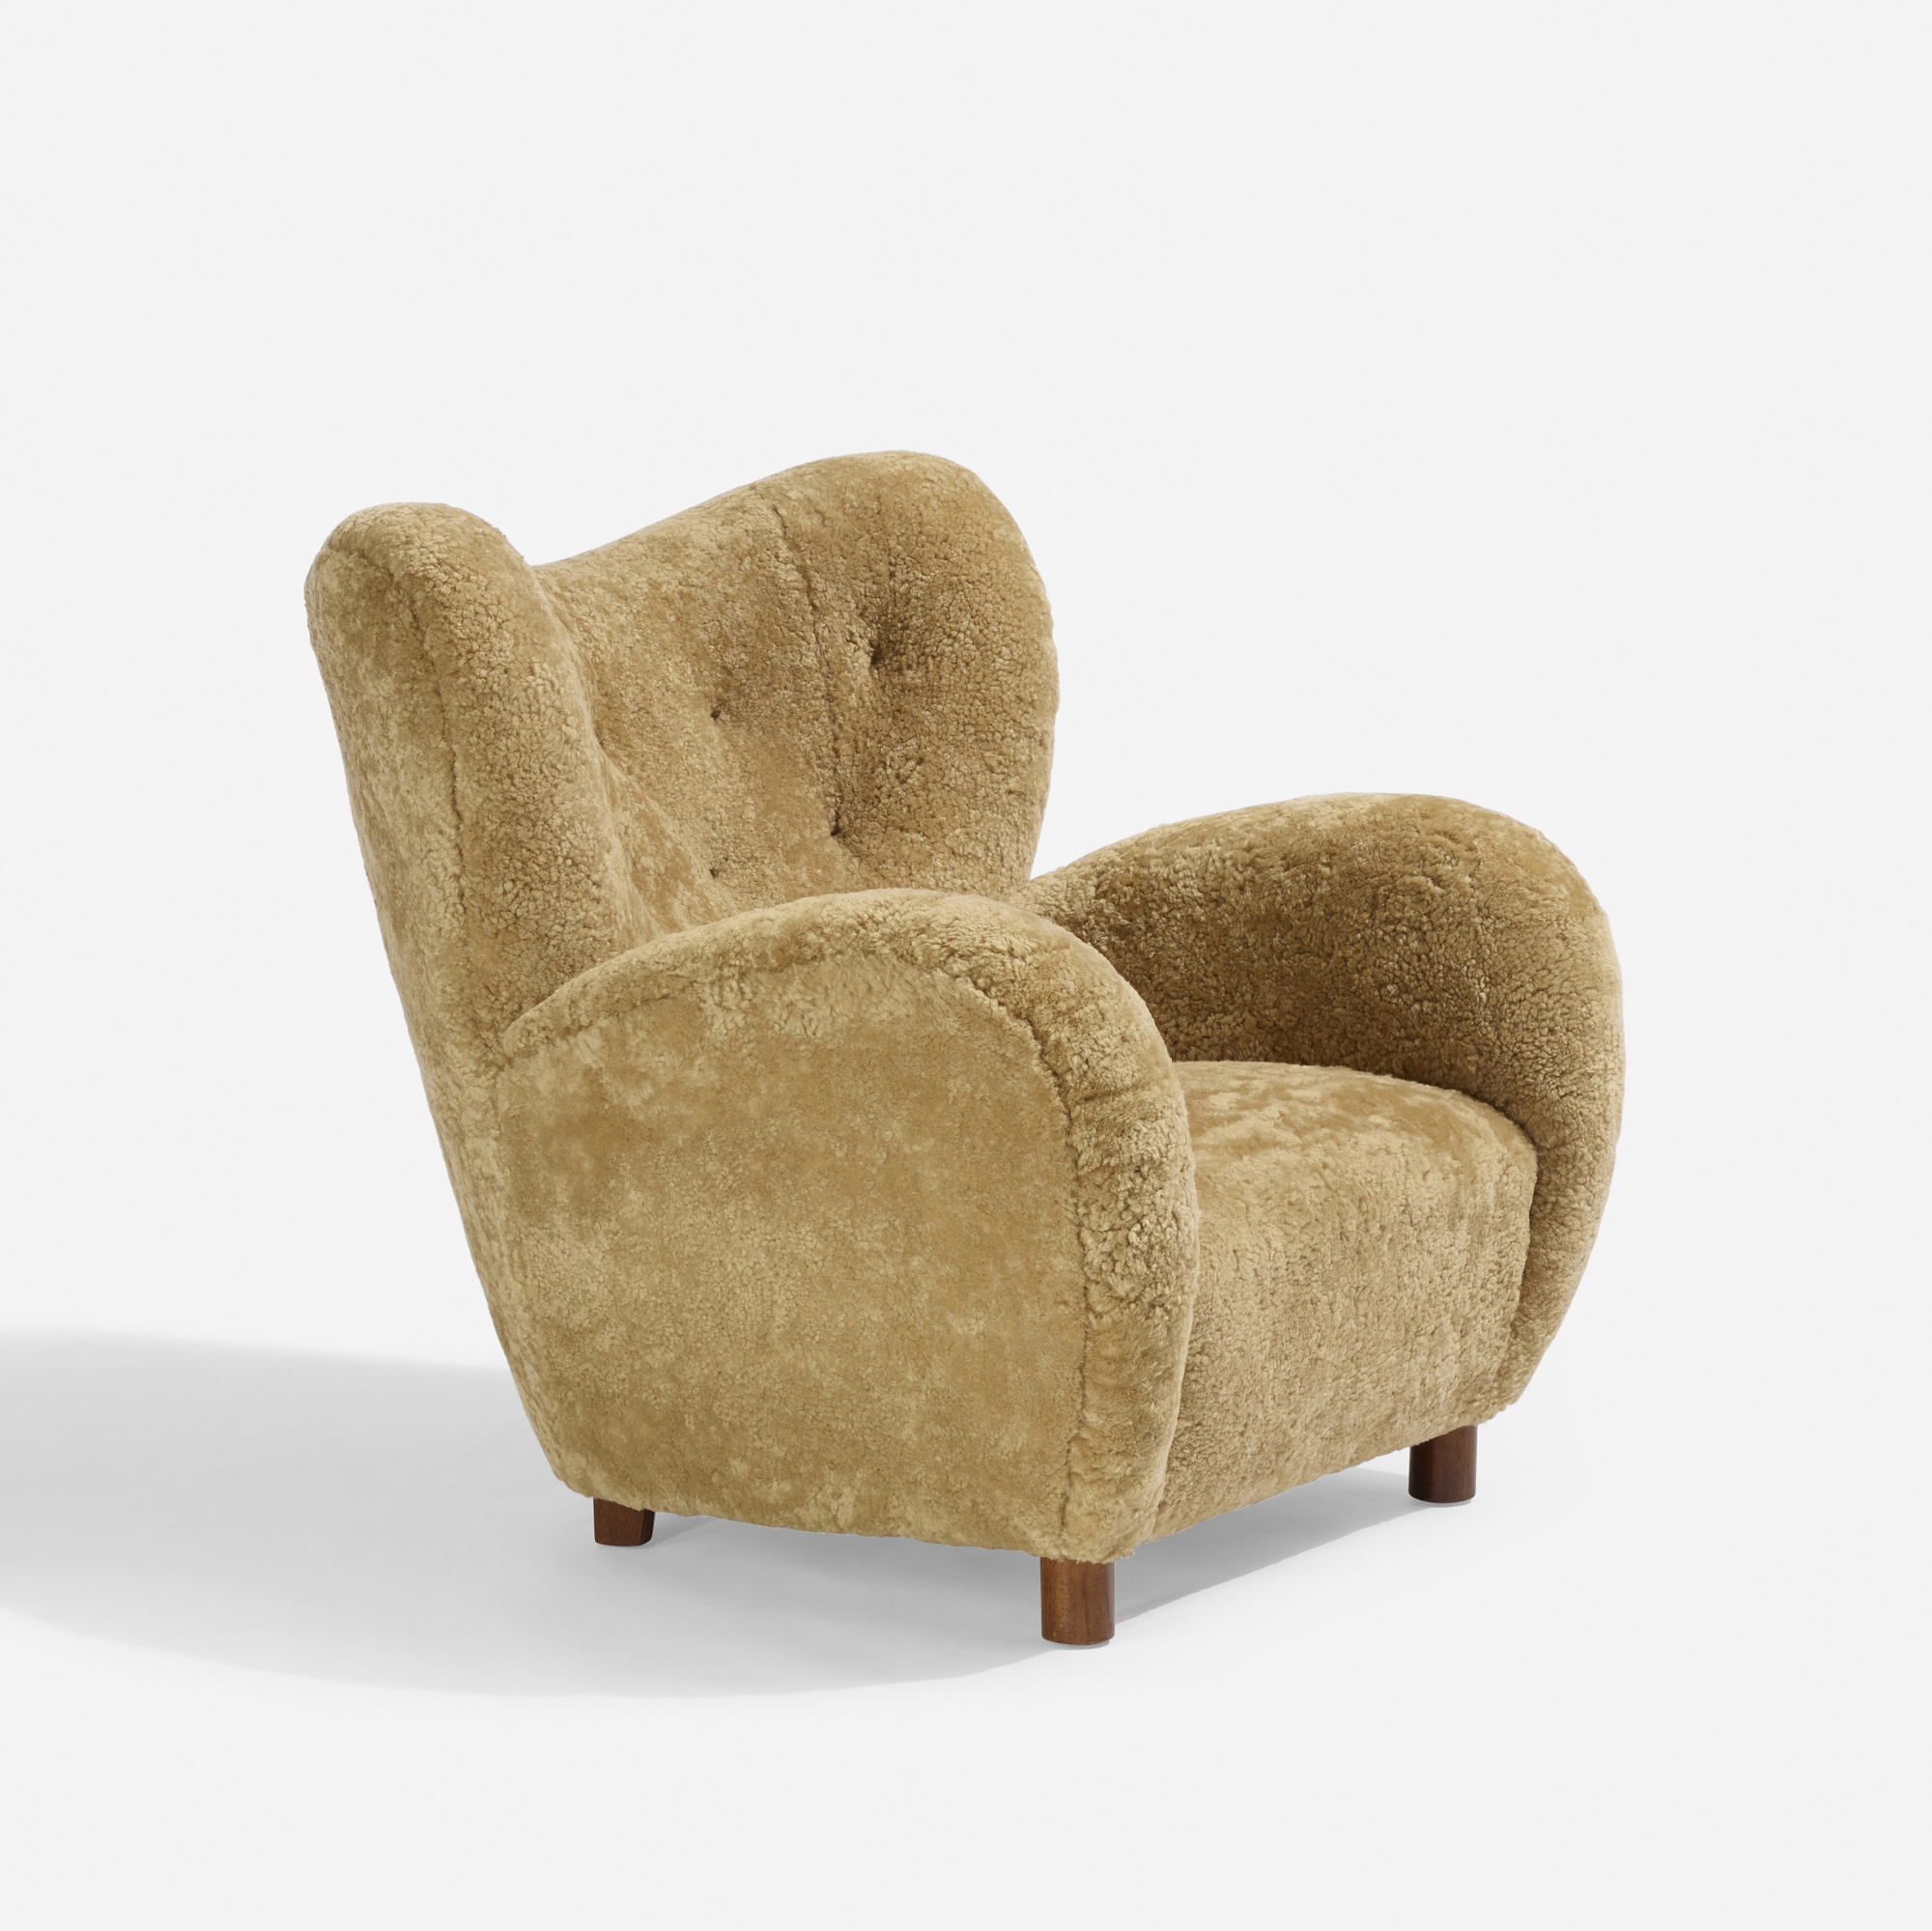 160: Flemming Lassen, attribution / lounge chair (2 of 3)